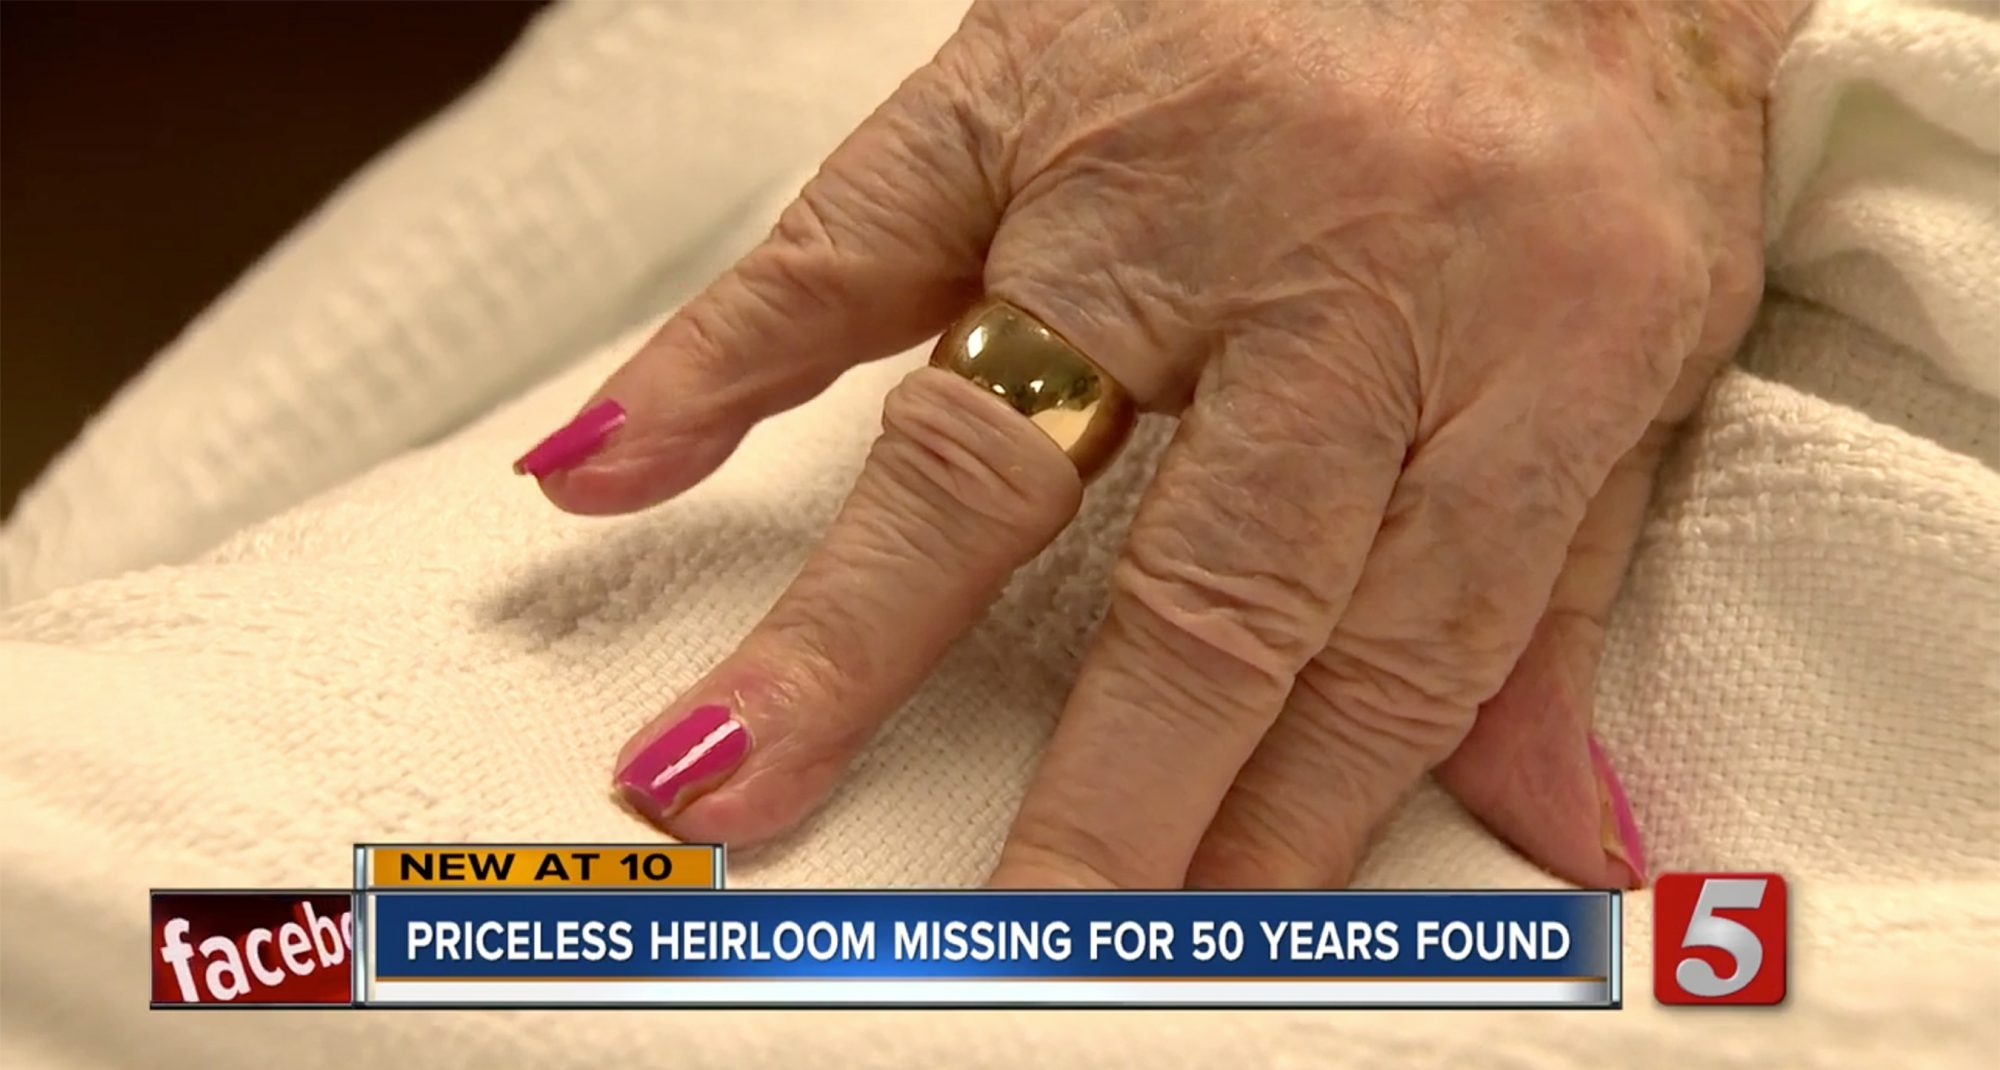 Man Finds 94-Year-Old's Wedding Ring 50 Years After She Lost It   PEOPLE.com